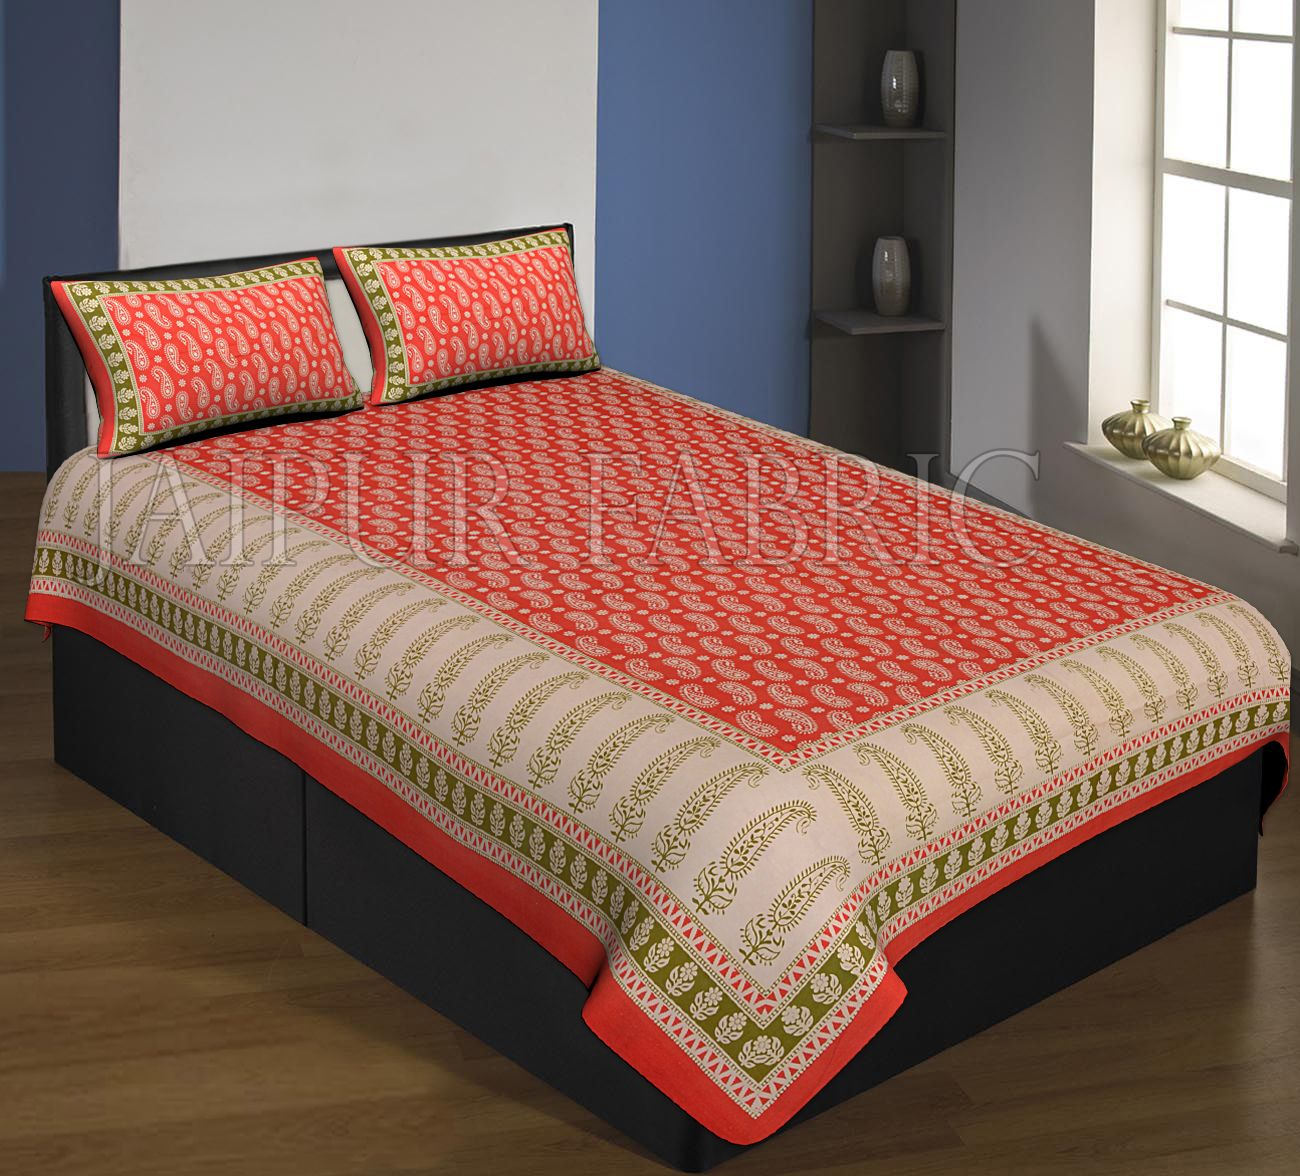 Red And Cream Boarder With Long Leaf Pattern Single Bed Sheet With 2 Pillow Cover